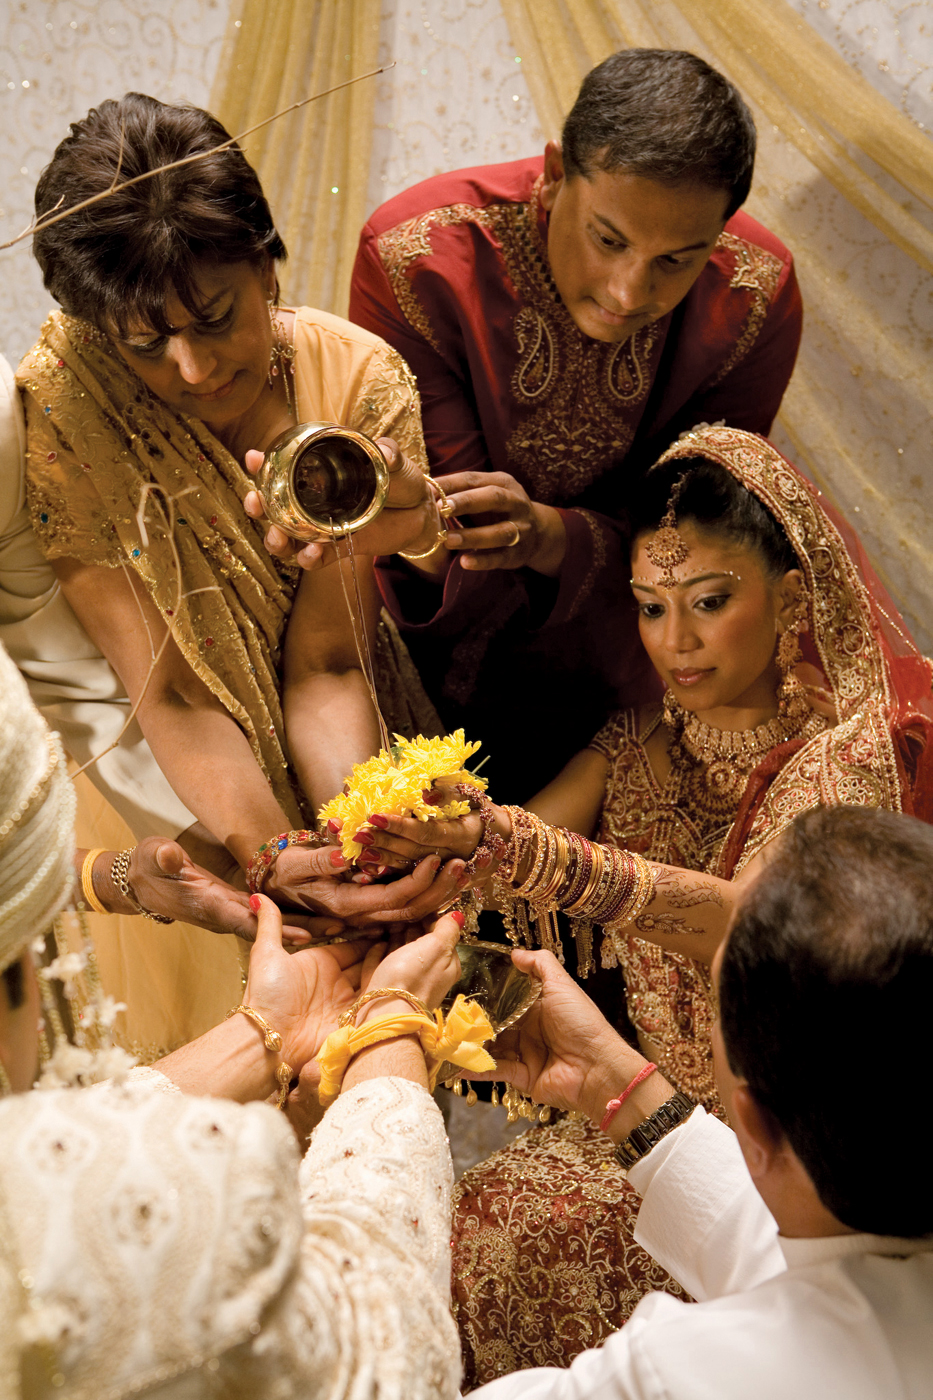 An Indian Wedding Ritual With The Bride